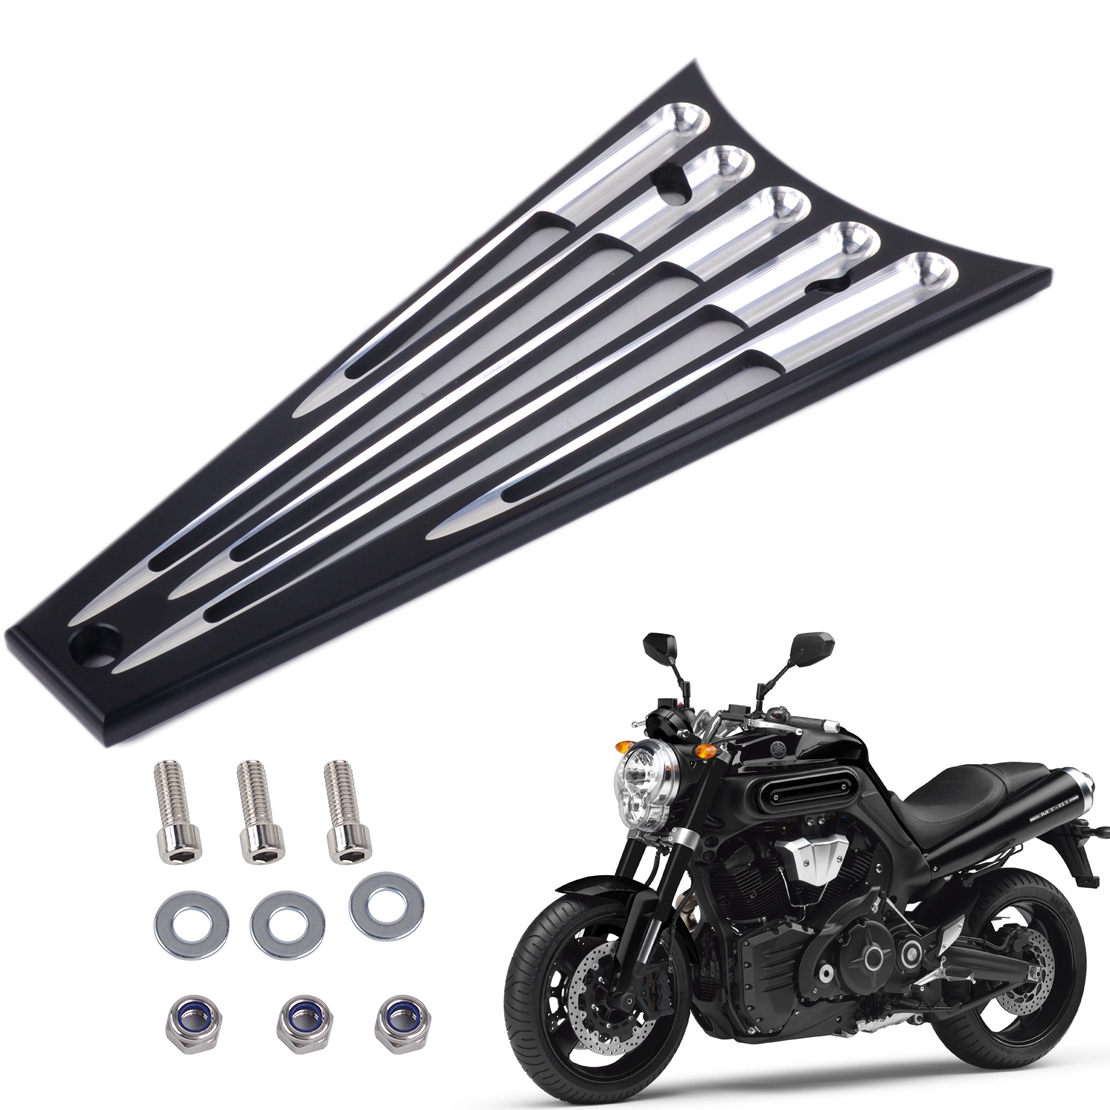 CITALL 6 Columns Billet Deep Cut Frame Grill For Harley Electra Glide Road King Road Street Glide FLHT FLHR FLTR FLHX 2009- 2013 brand new mid frame air deflector trims for harley cvo limited road king electra glide street electra tri glide flhx 2009 2016